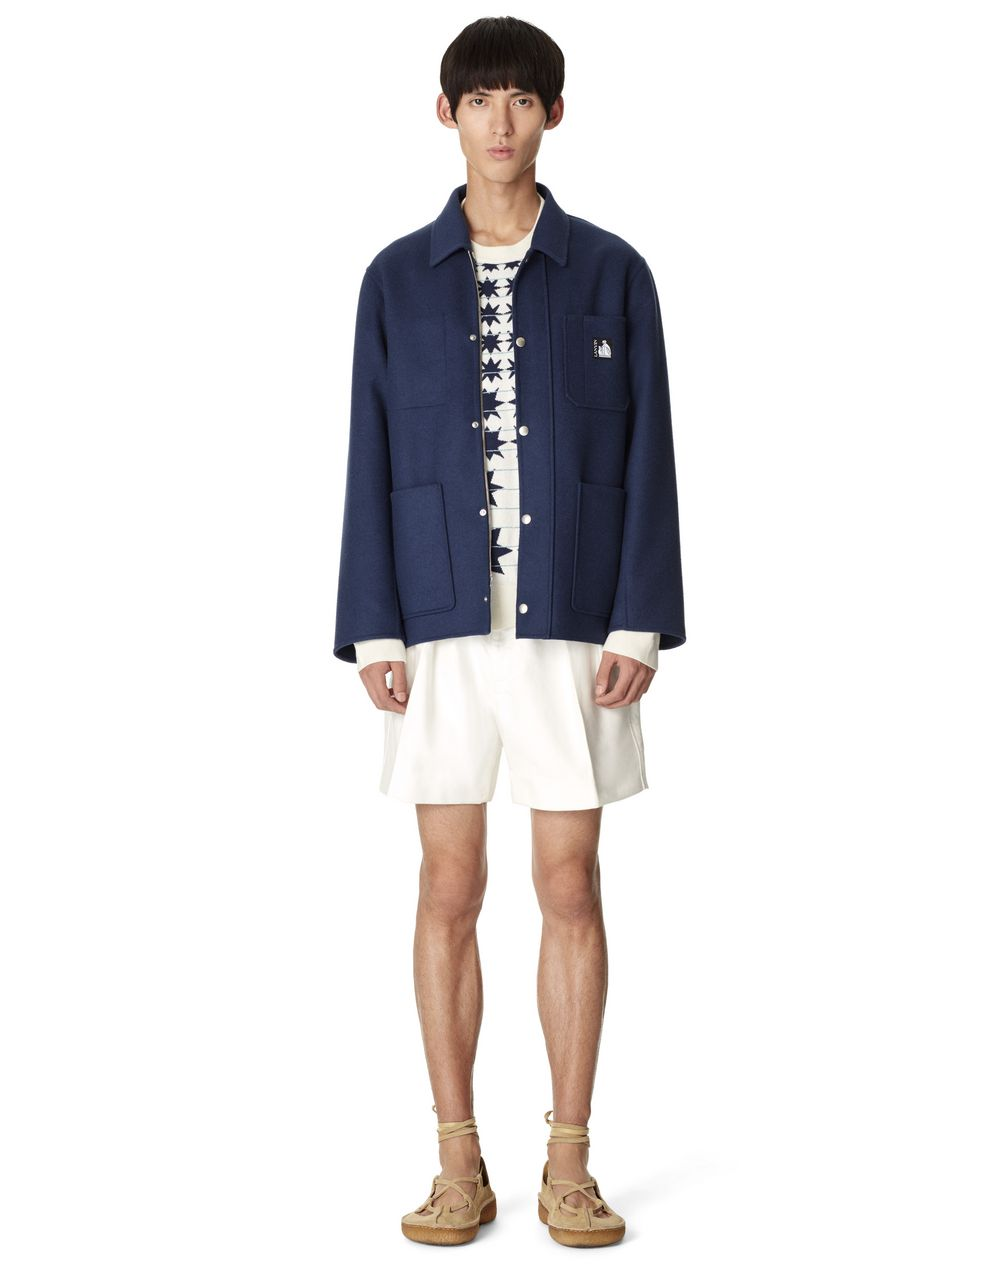 WORKWEAR SHIRT JACKET - Lanvin